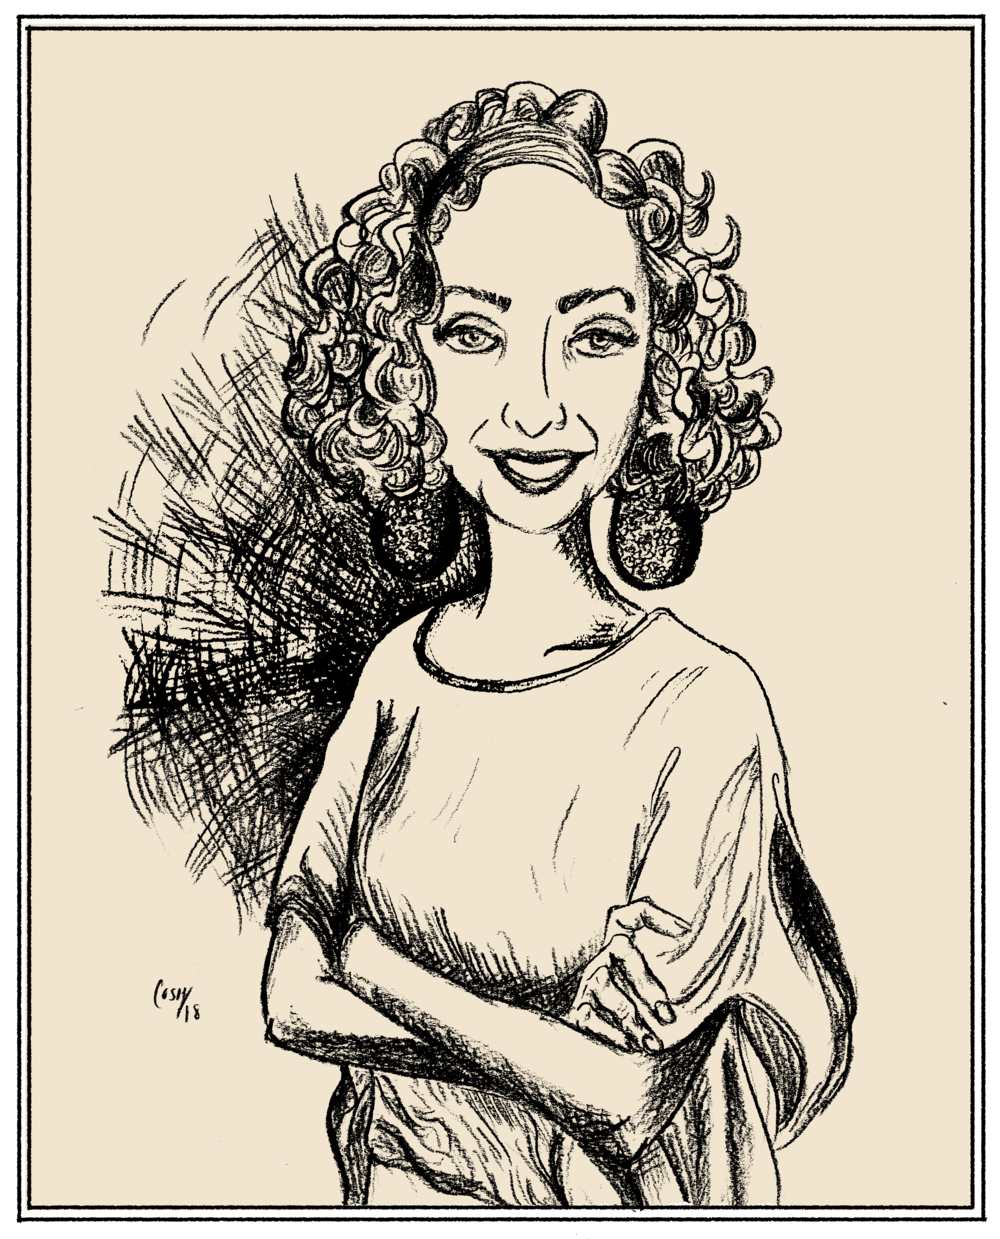 Sofia Samatar, Pocket Interview No. 7 -  Sofia Samatar lives in Virginia. Her 2014 debut novel, A Stranger in Olondria, won the World Fantasy and British Fantasy awards for Best Novel. Her most recent book, published in February of this year, is Monster Portraits, an autobiography threaded with accounts of fantastic creatures illustrated by her brother.Last year, Sofia spoke with us about, among other things, jazz, identity, belonging, feeling lost in life and in stories, and how we might use language to build, and remember, home. Also, Enid Blyton. (click here to listen to an audio version of this interview)1 - 2 - 3 - 4 - 5 - Questionnaire